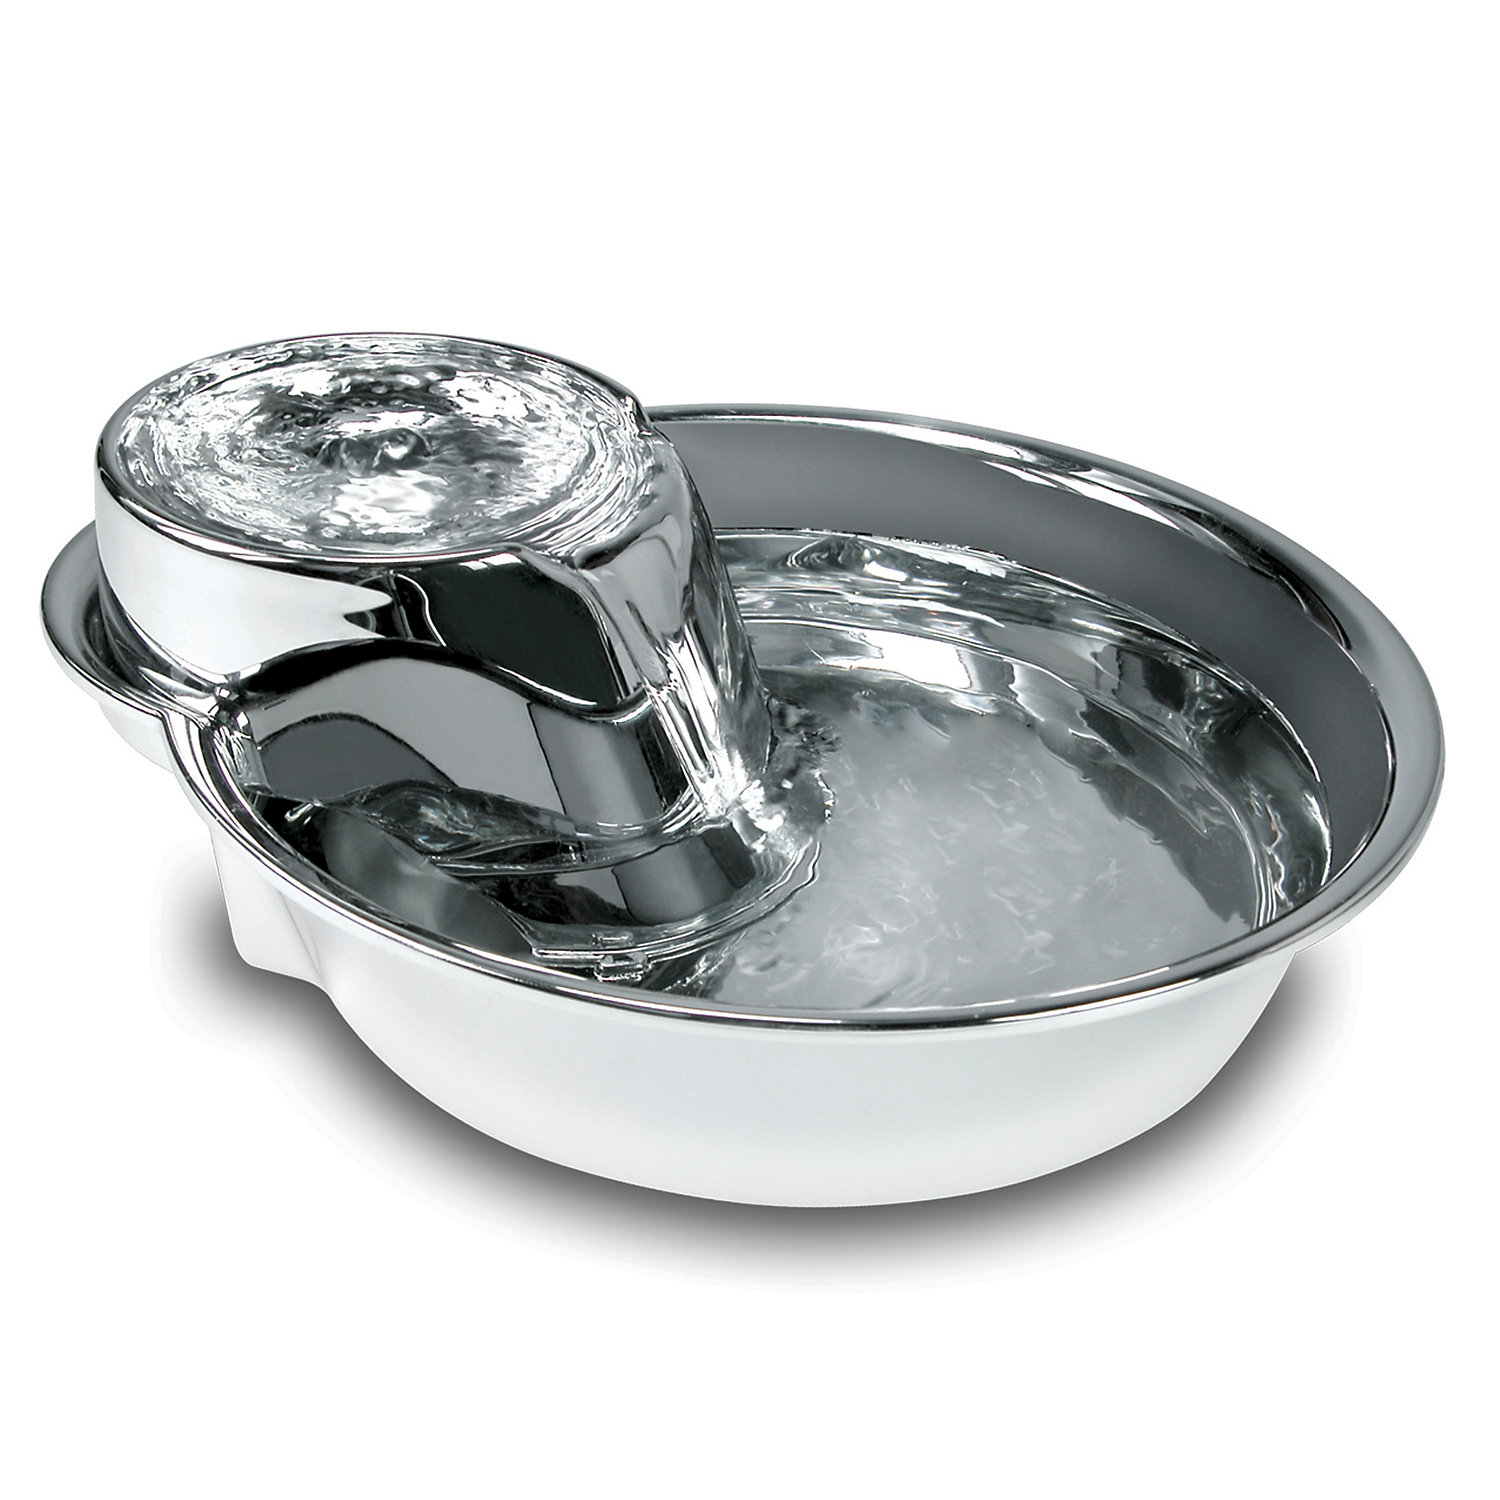 Image of Pioneer Pet Big Max Stainless Steel Pet Fountain for Dog